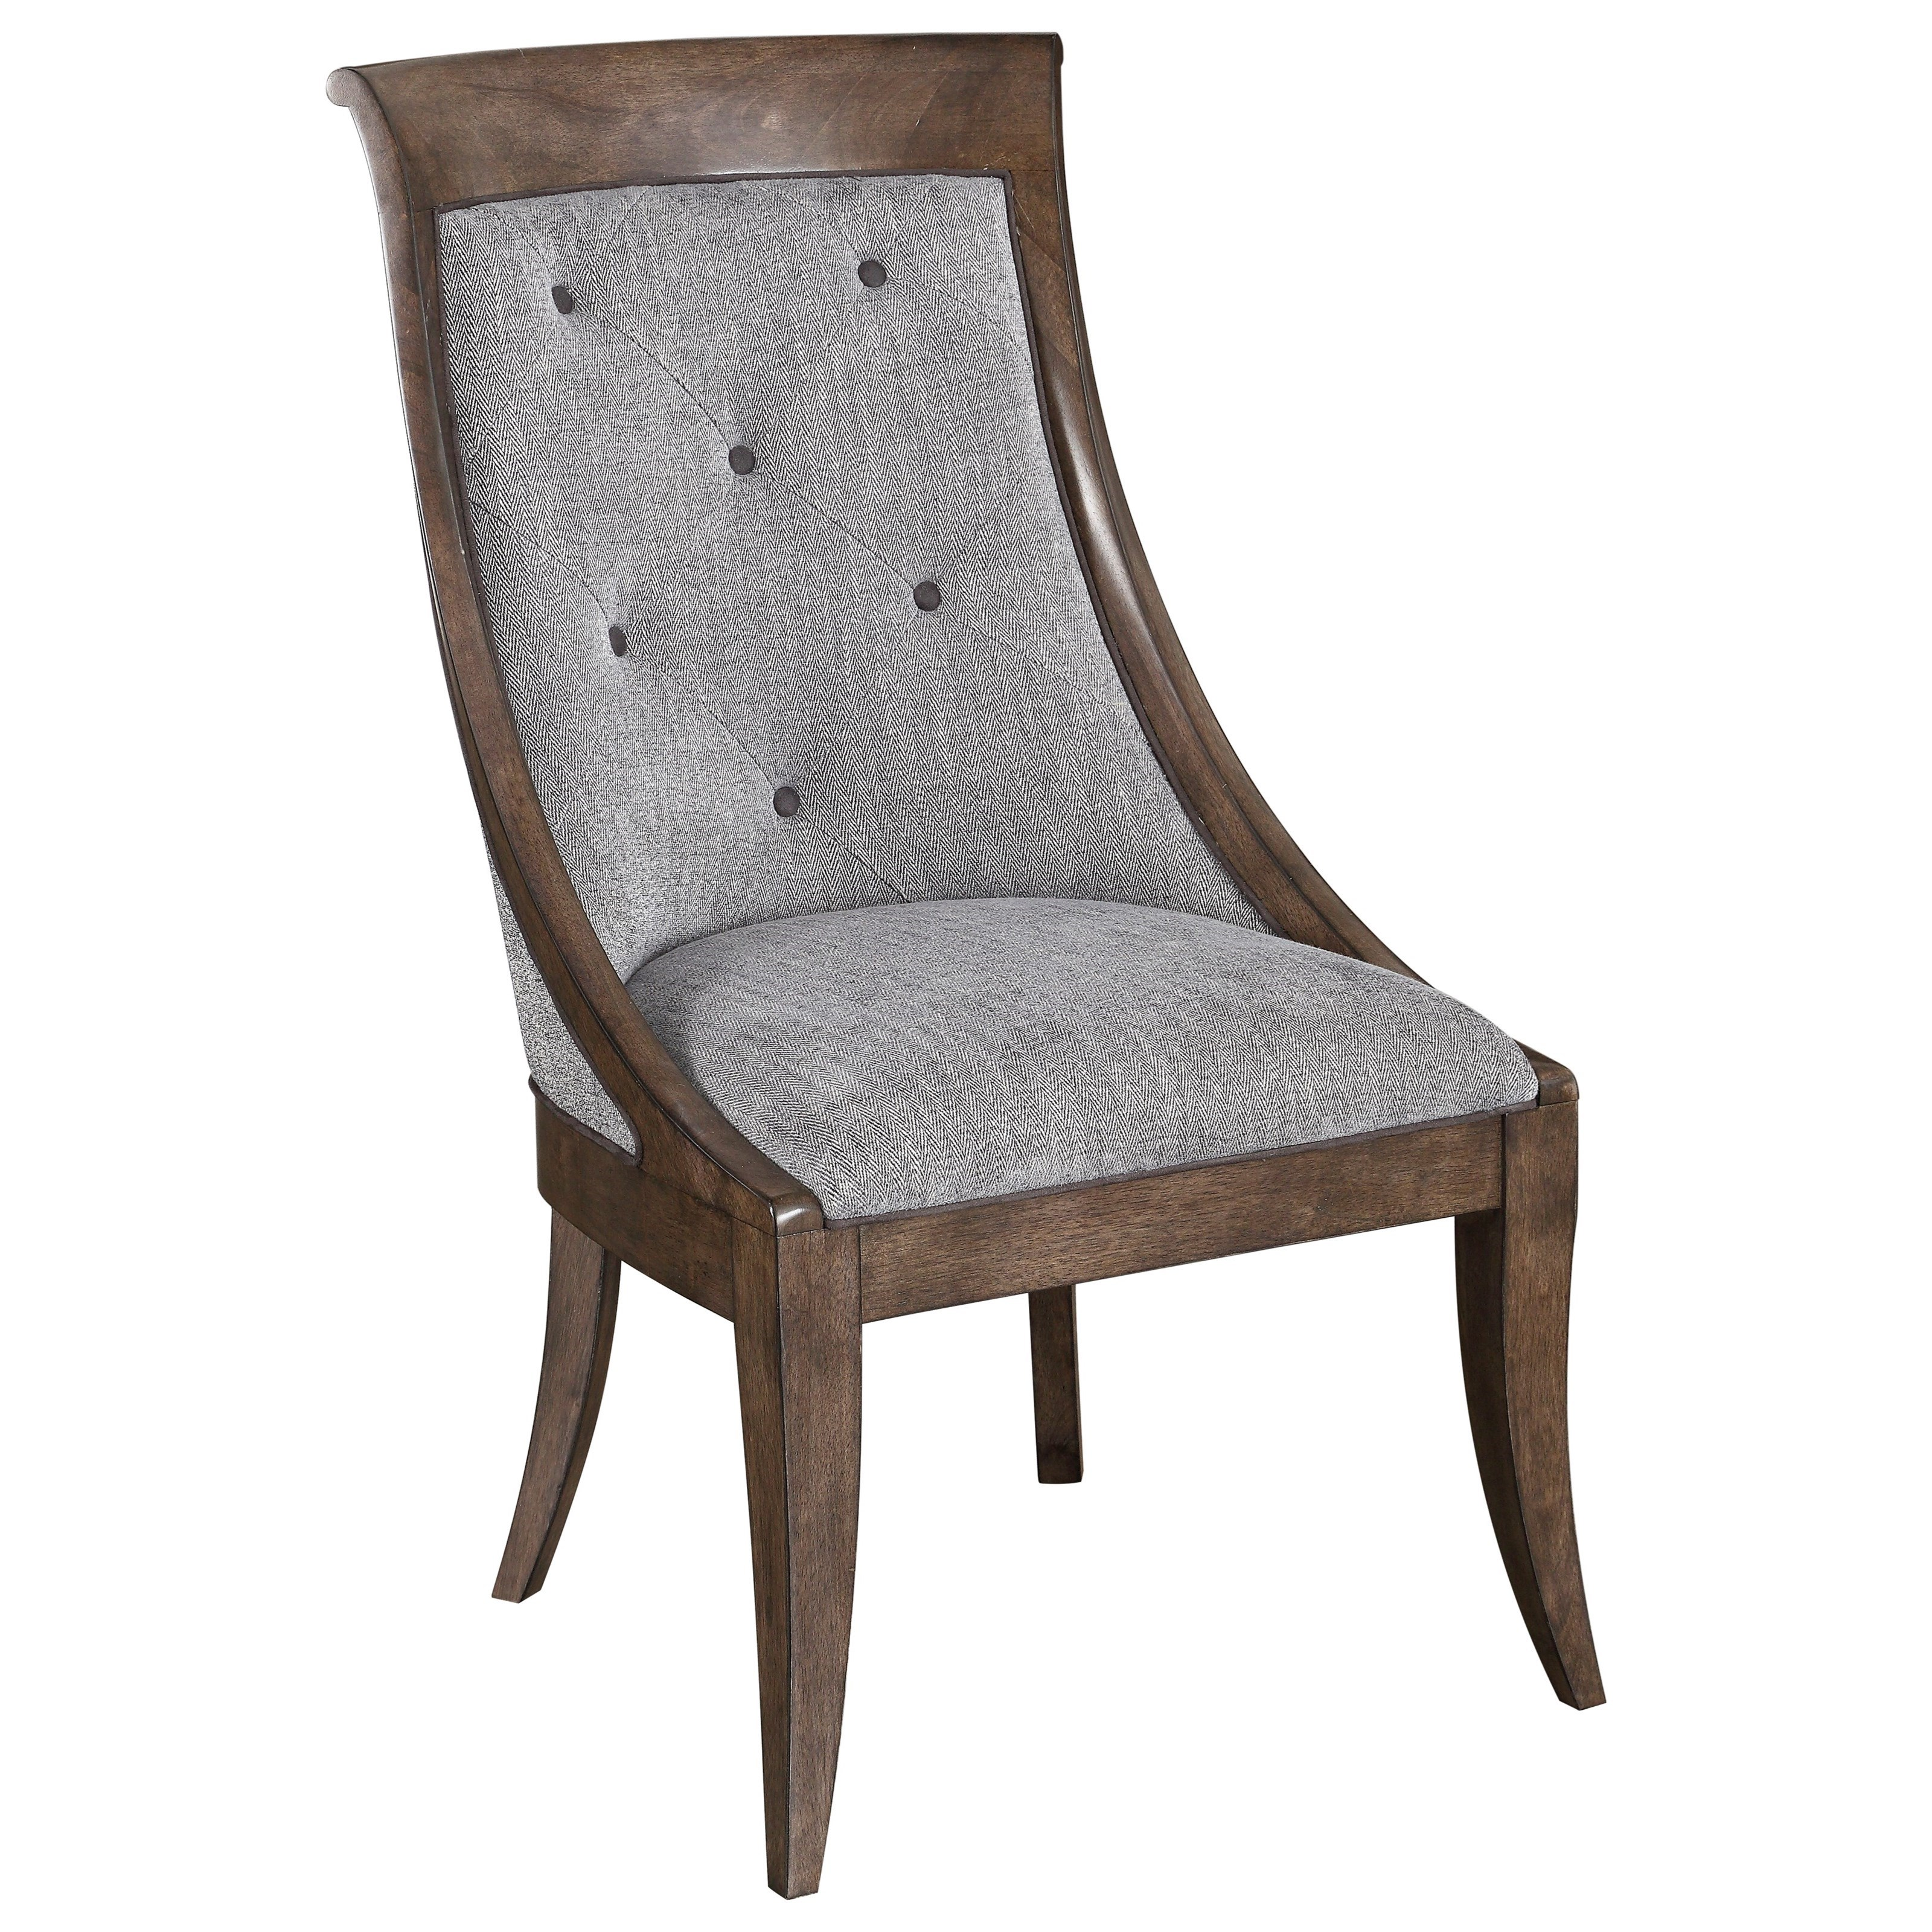 Landmark Tufted Sling Chair by A.R.T. Furniture Inc at Dream Home Interiors